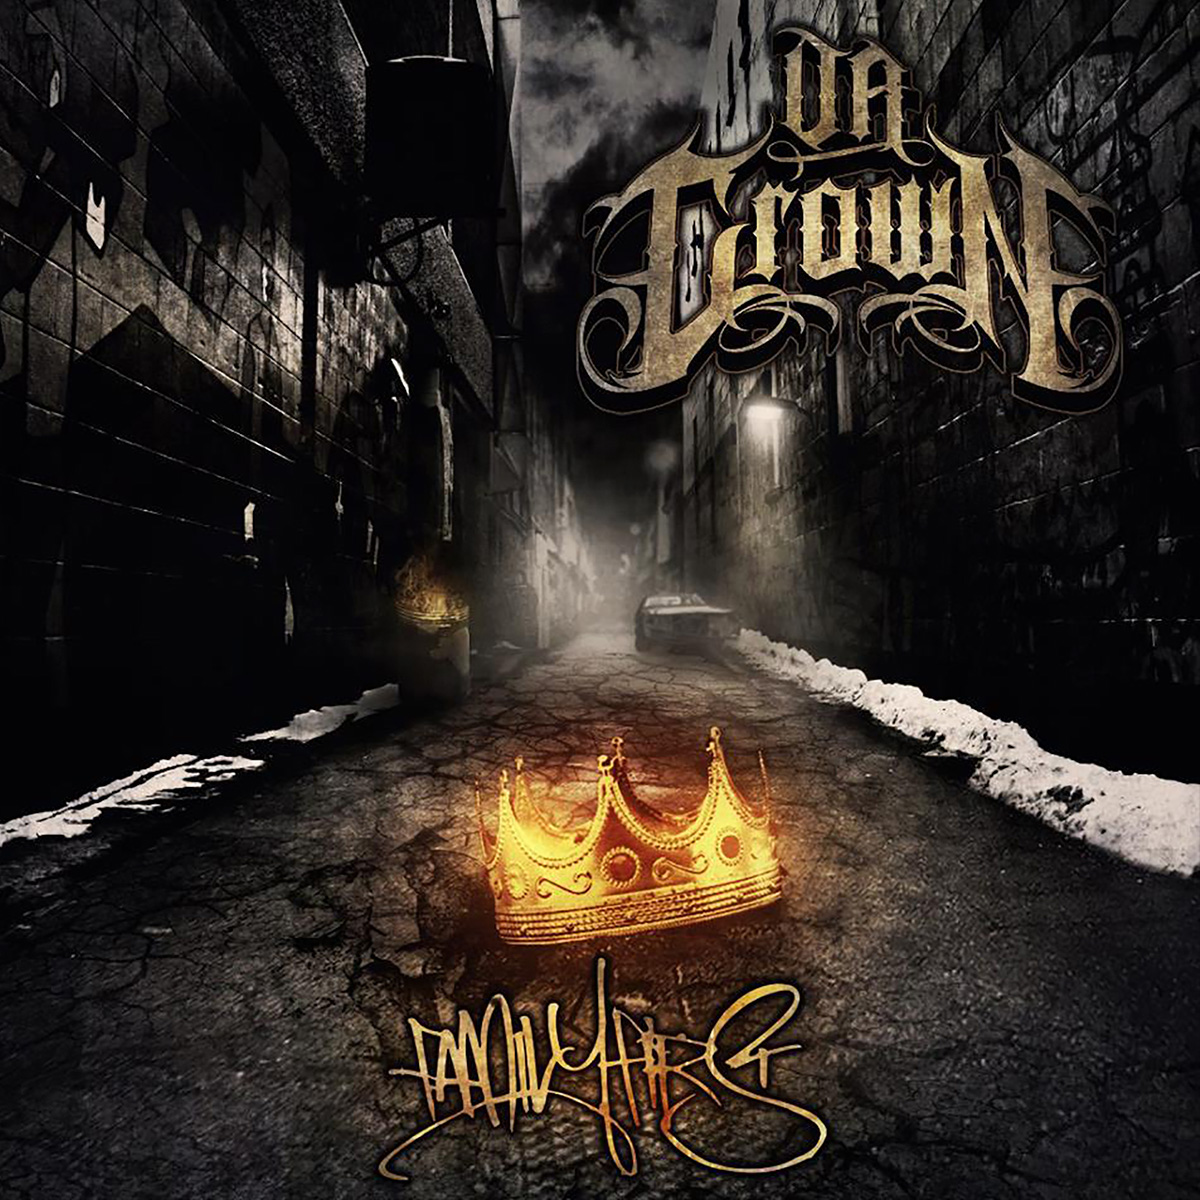 Da Crown - Family First - Available Worldwide November 26th 2013